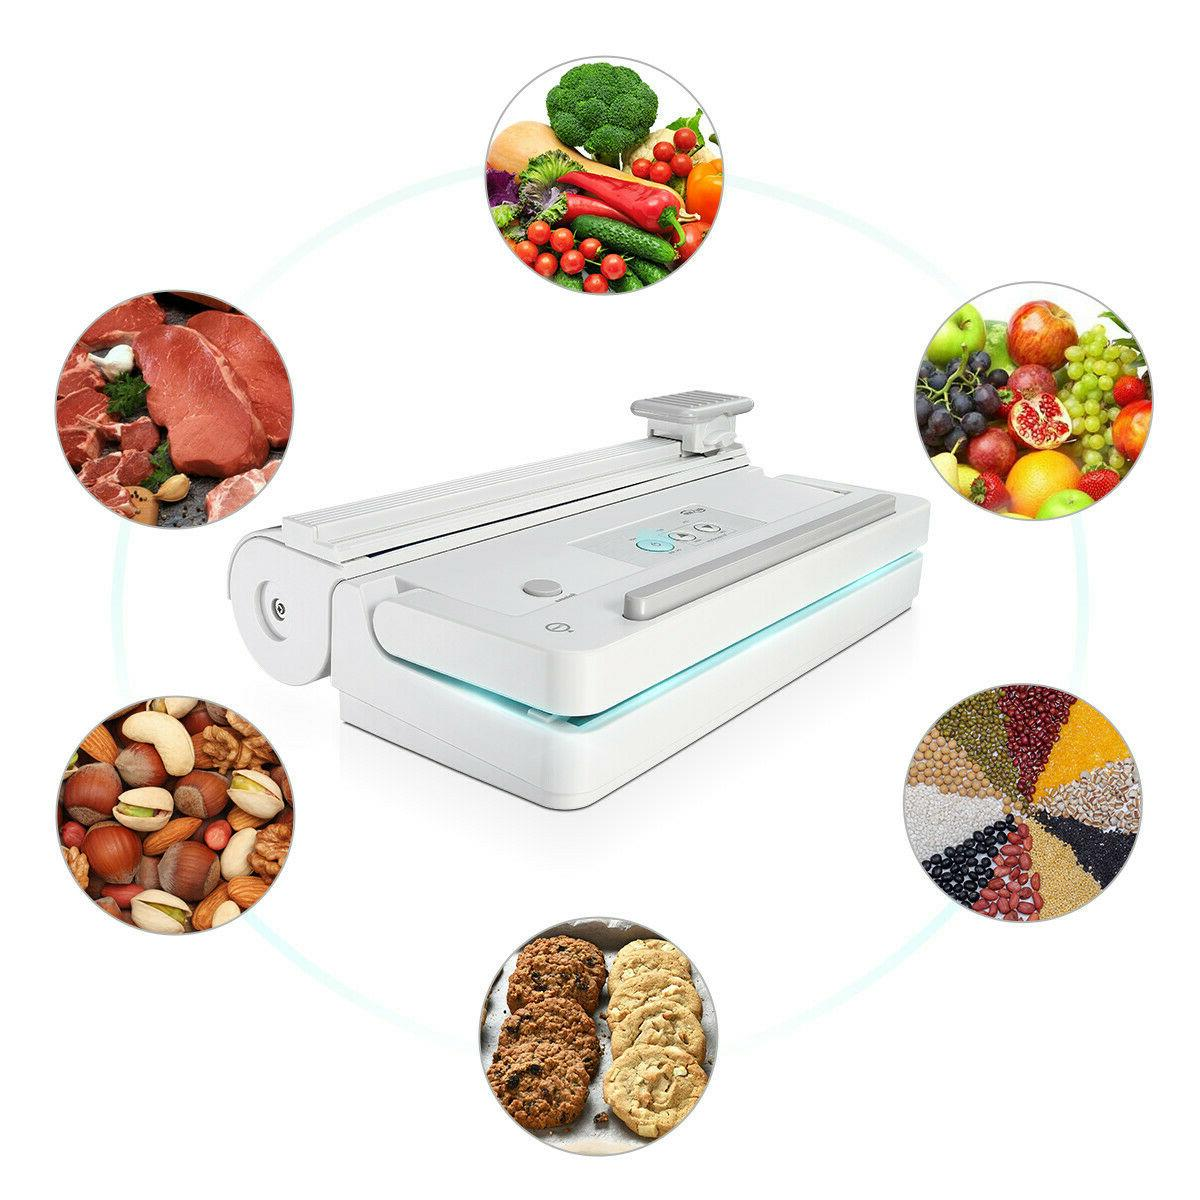 Commercial Food Sealer Machine